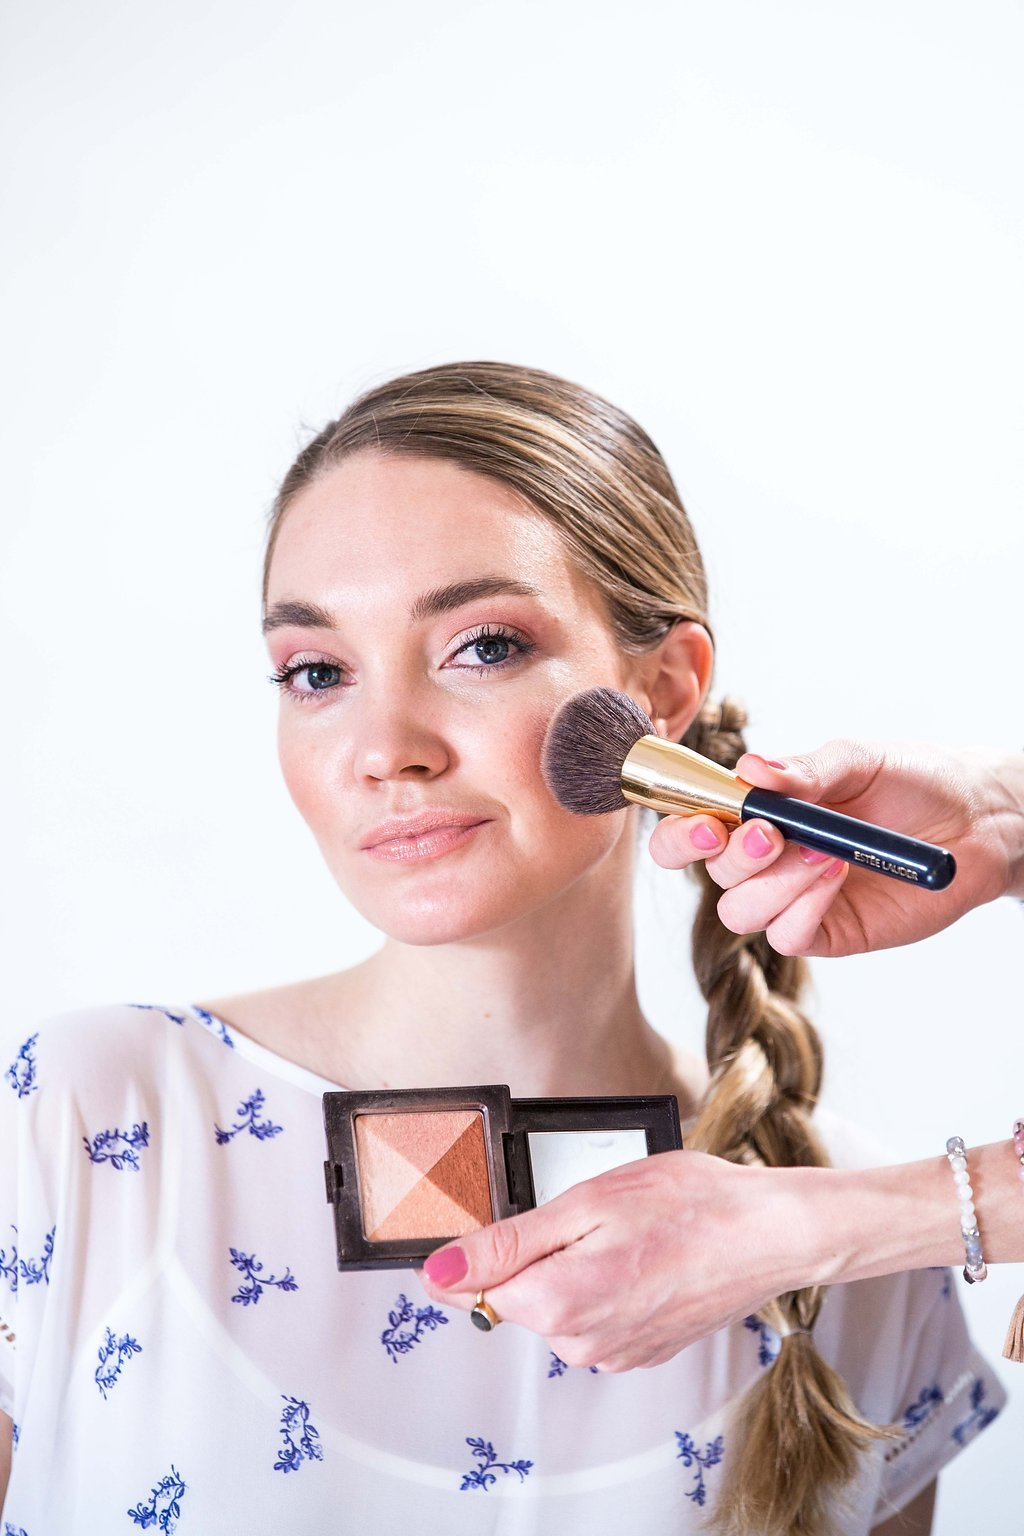 How to apply bronzer for the Effortless Bronzed makeup look for a casual weekend brunch with girlfriends created by Klava Z Ottawa makeup artist focused on bronzed glow, soft pink eyeshadows and nude lips.